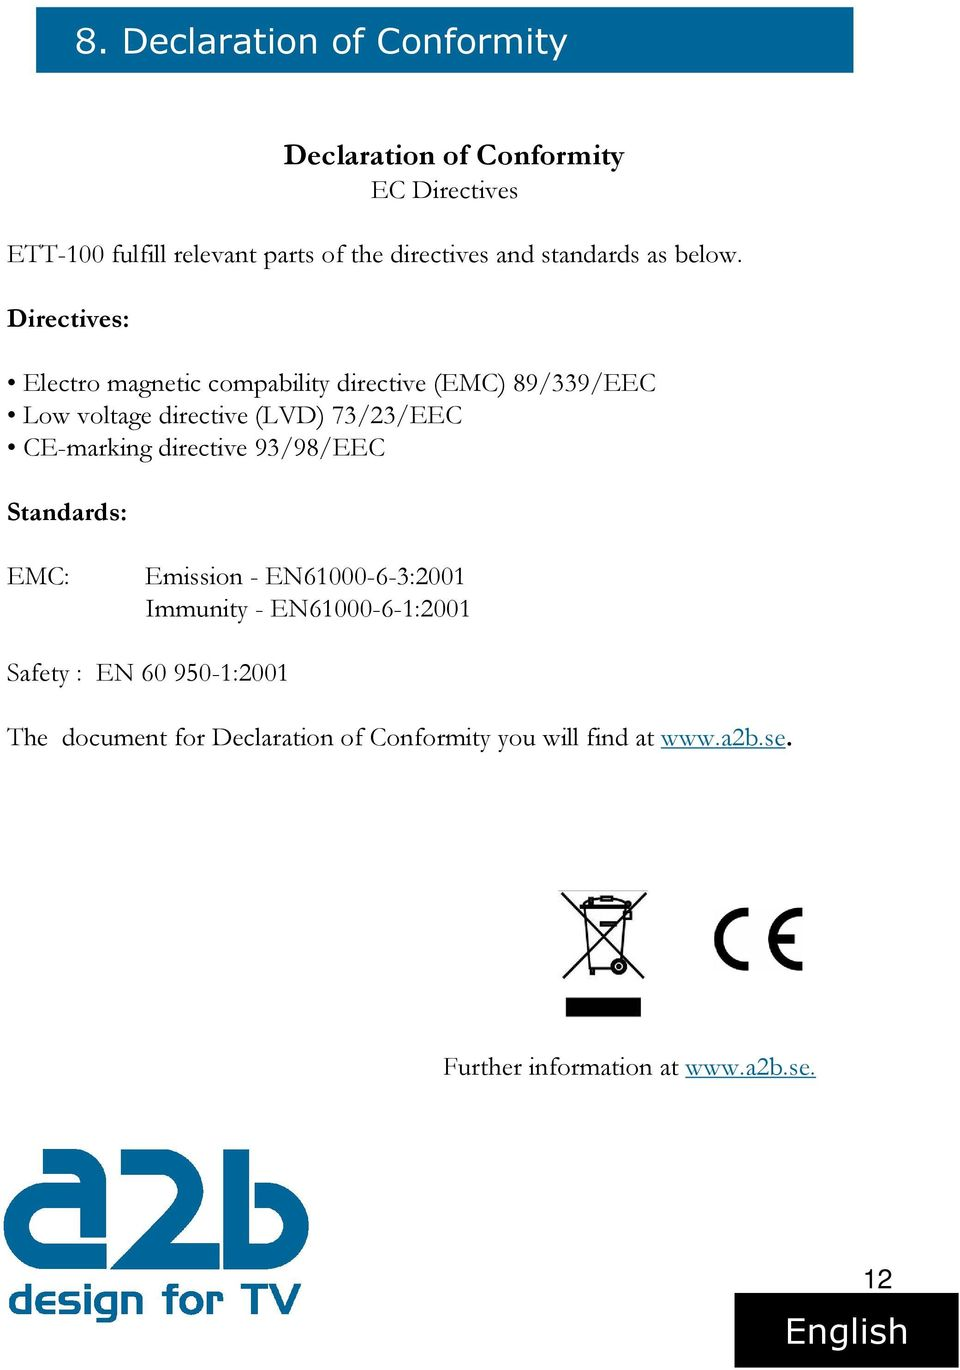 Directives: Electro magnetic compability directive (EMC) 89/339/EEC Low voltage directive (LVD) 73/23/EEC CE-marking